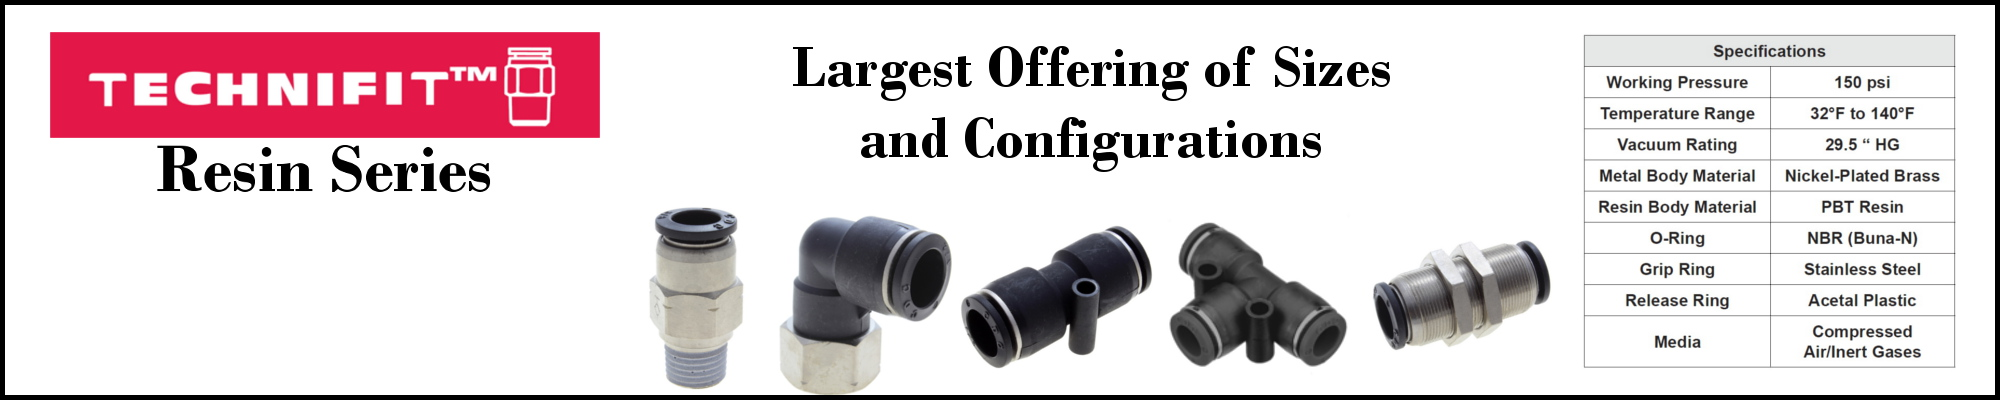 Technifit™ Push-to-Connect Fittings - Advanced Technology